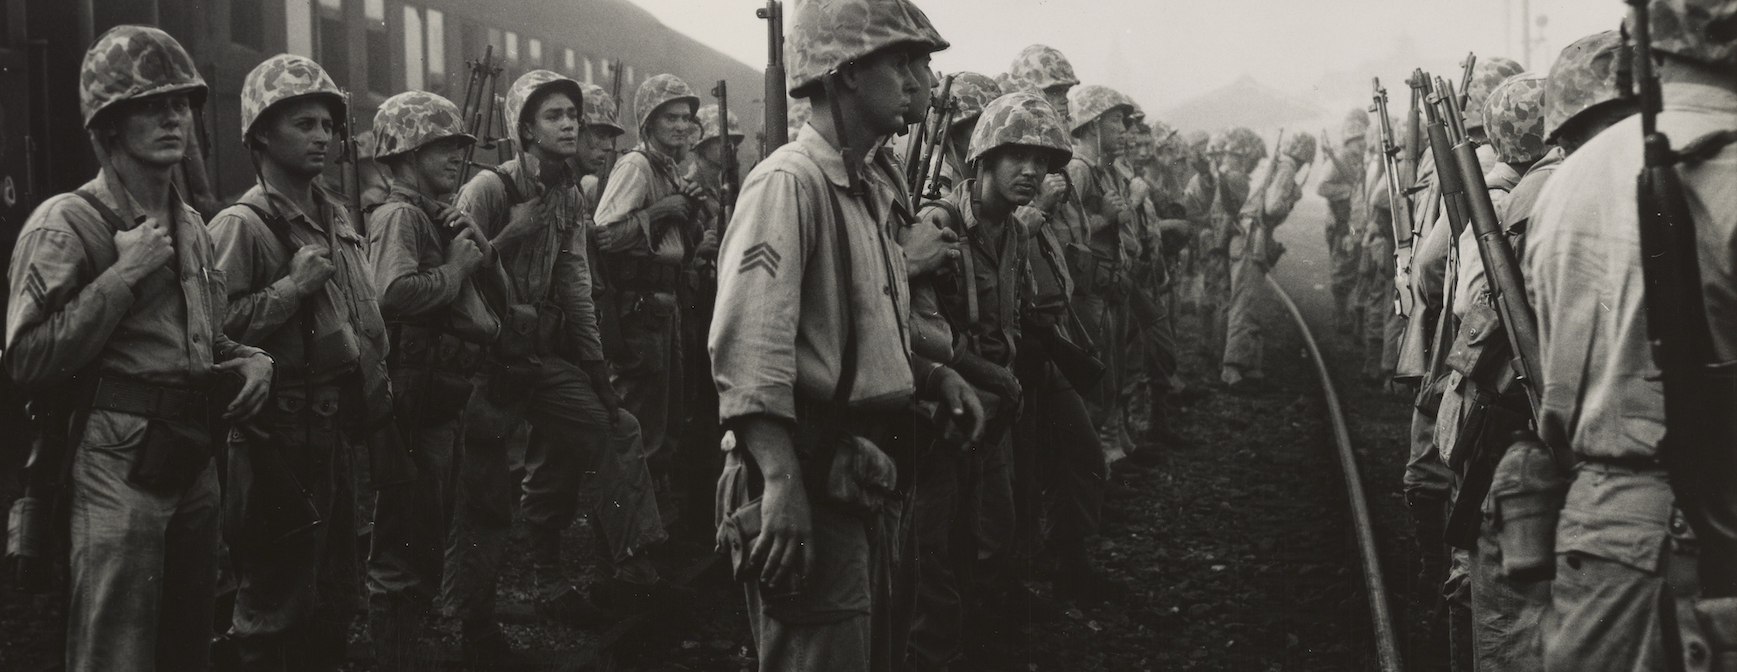 Korean War: 3rd platoon of D Co, 2nd Bn, 5th marines muster